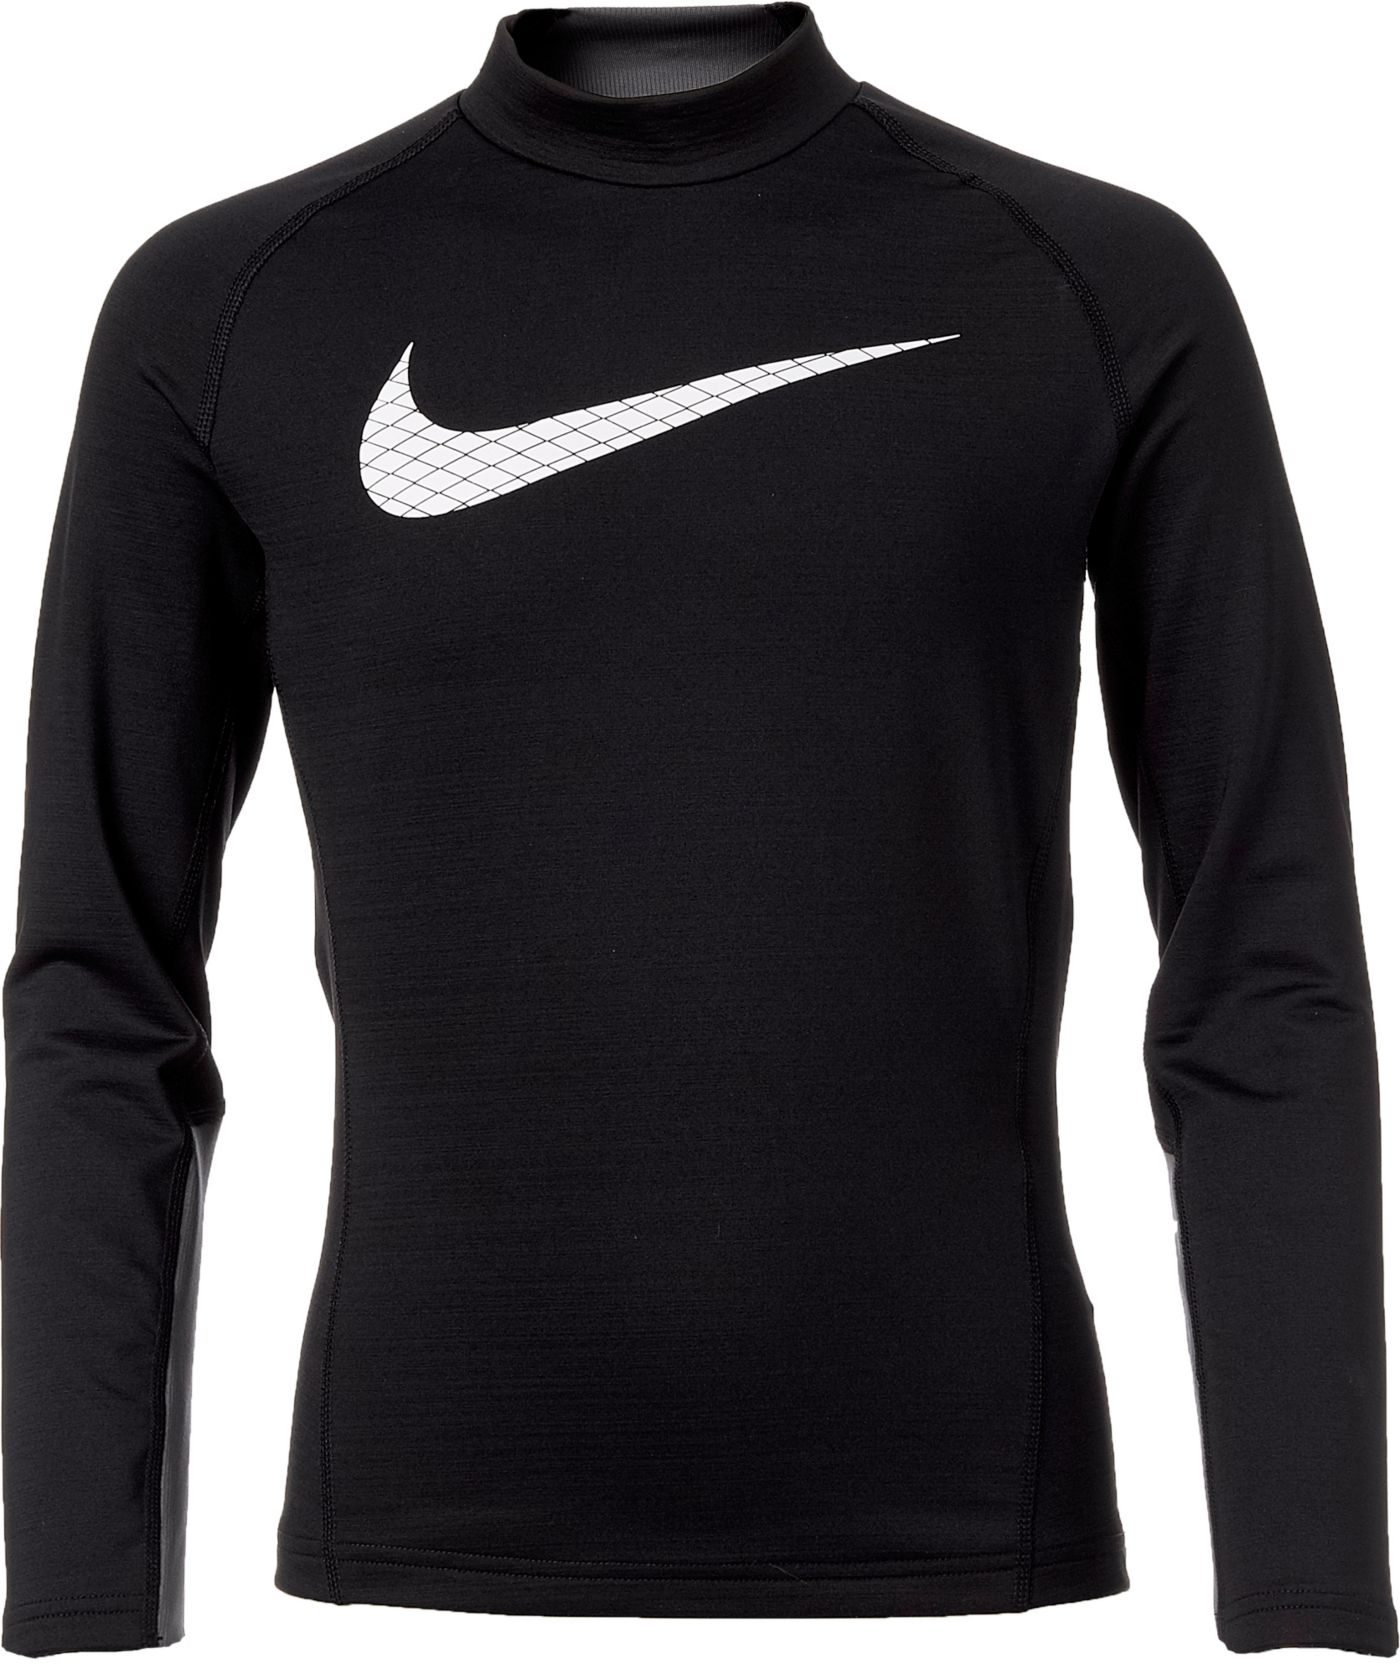 Nike Boys' Dri-FIT Mock Neck Compression Shirt